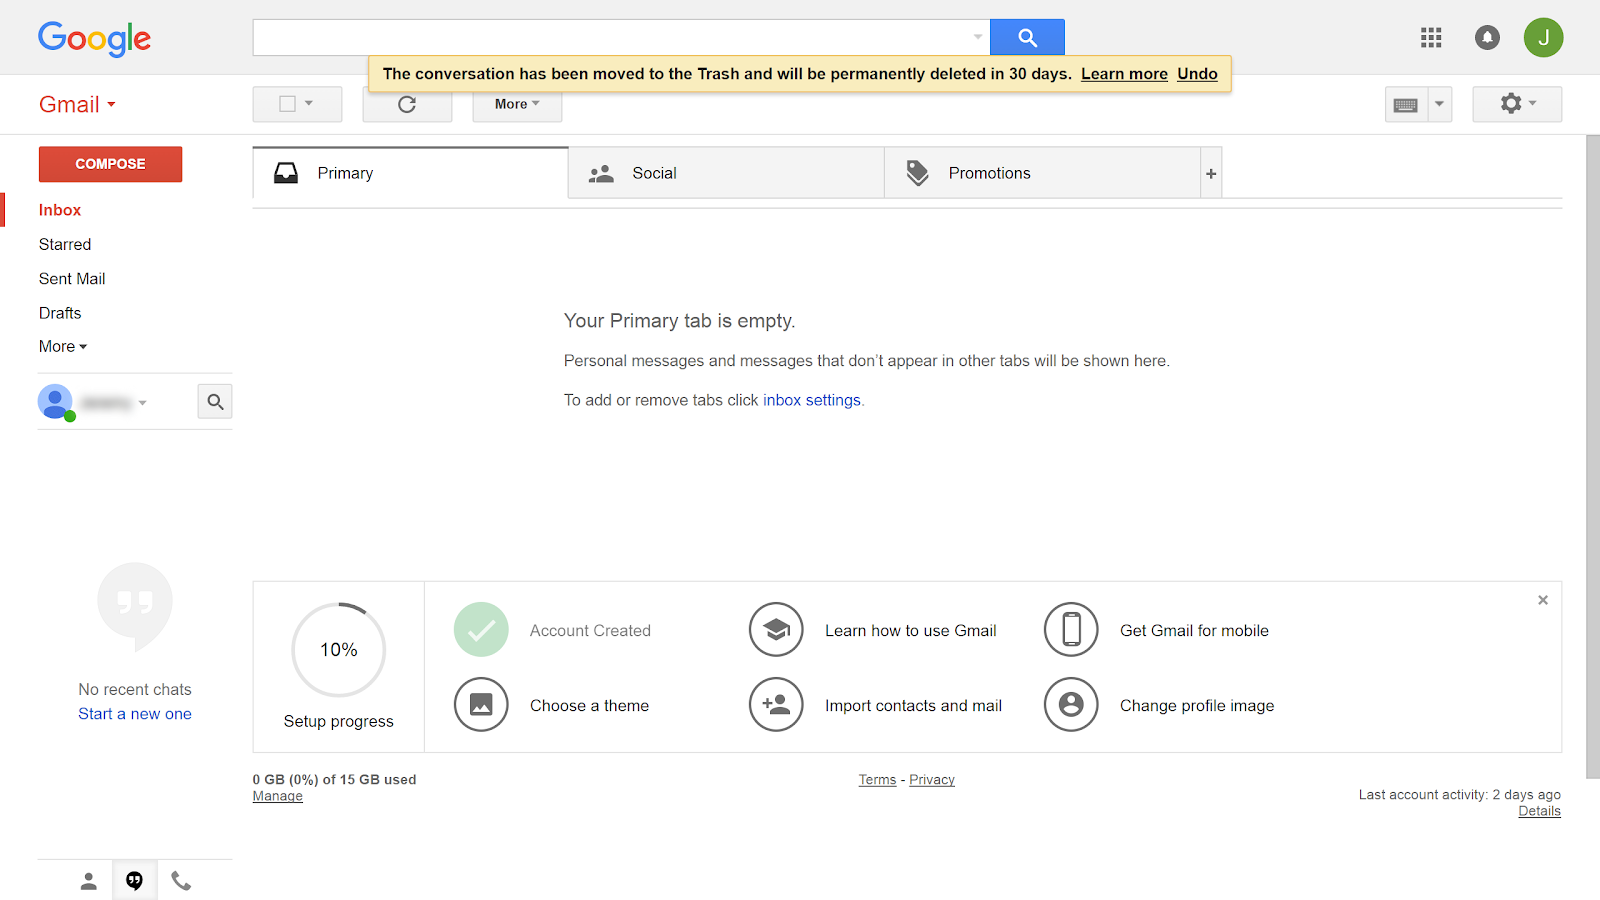 Gmail theme delete -  Let You Know That The Email You Deleted Can Be Found In Your Trash For The Next 30 Days Google Does This So Can Find Emails You Accidentally Delete